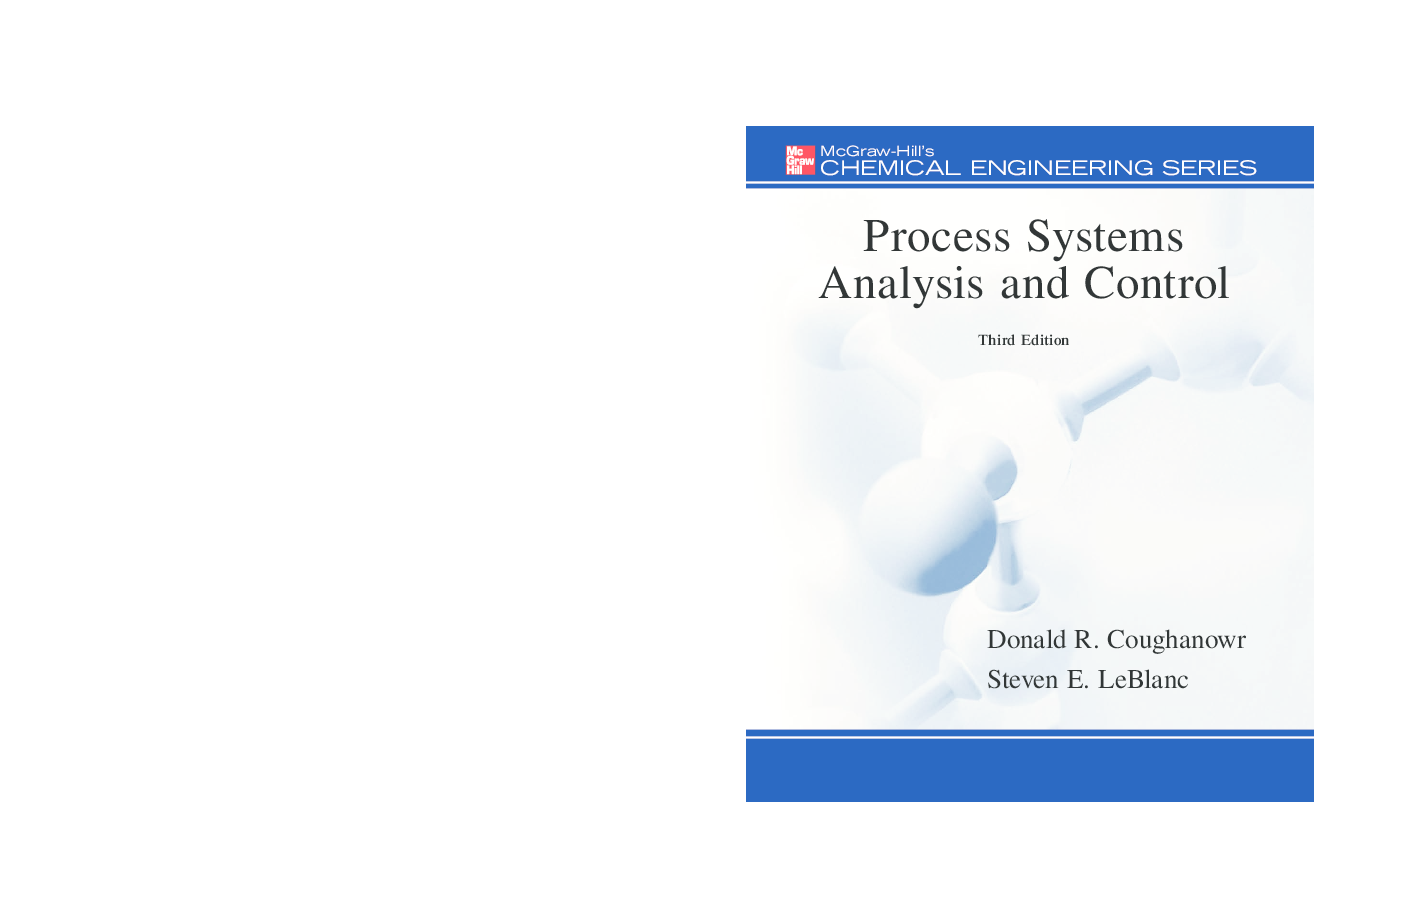 PDF) Process Systems Analysis and Control - Donald R